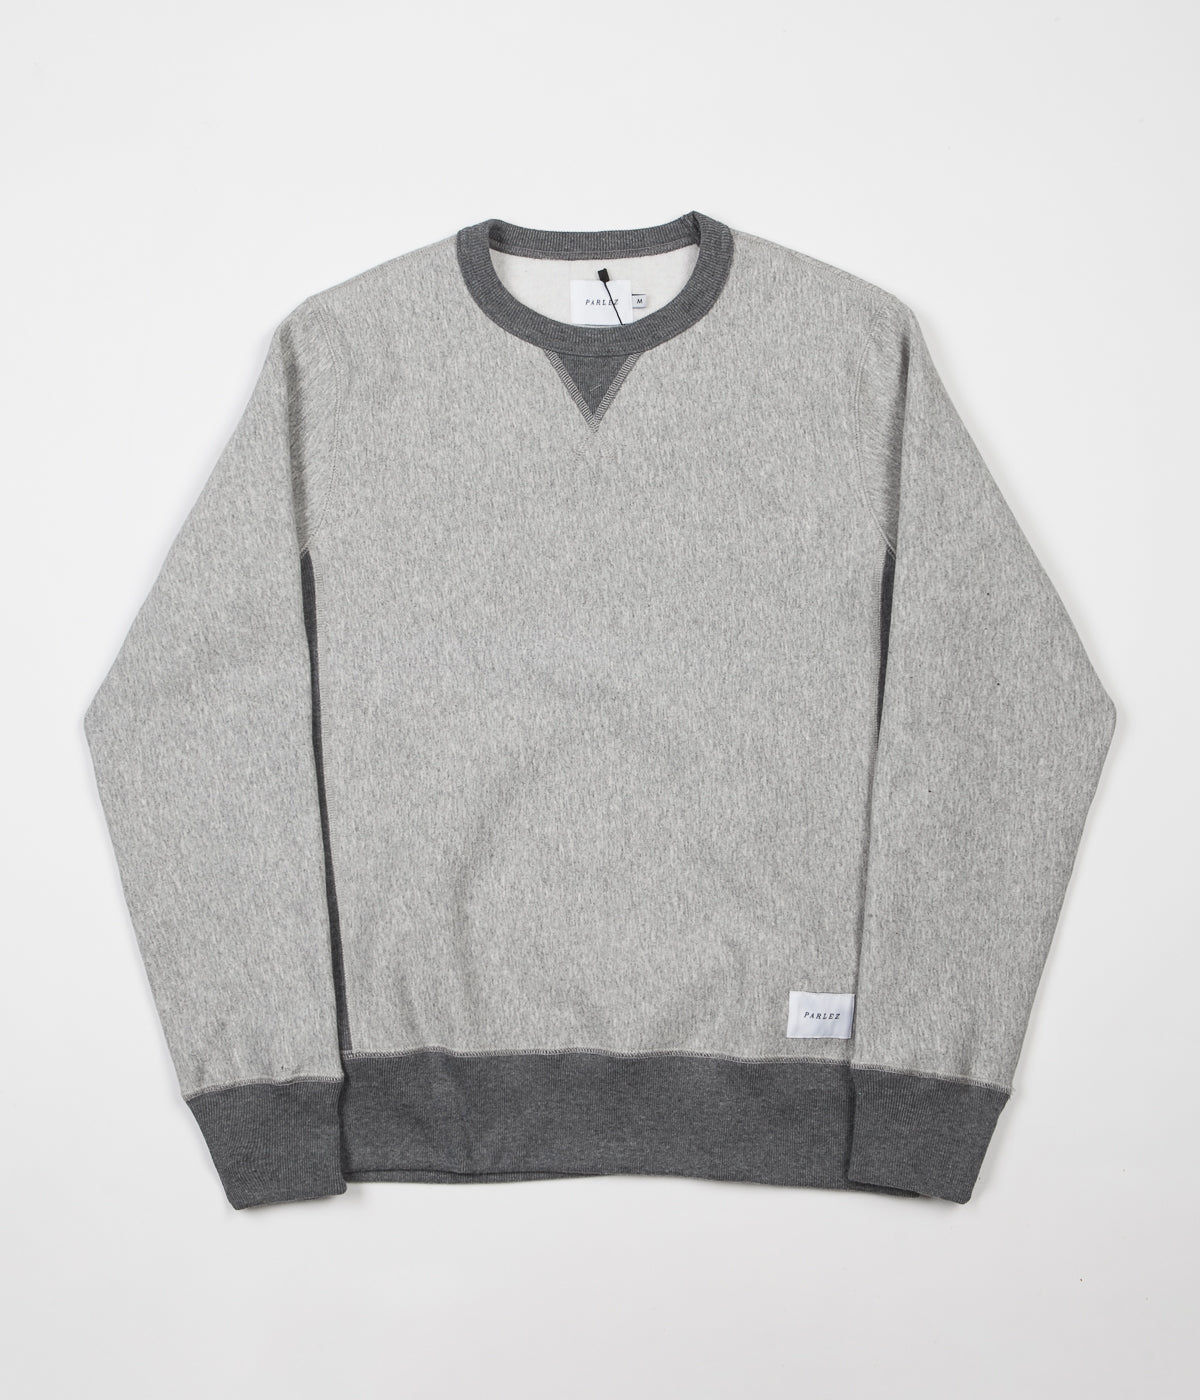 Parlez Albion 16oz Crewneck Sweatshirt - Heather Mix